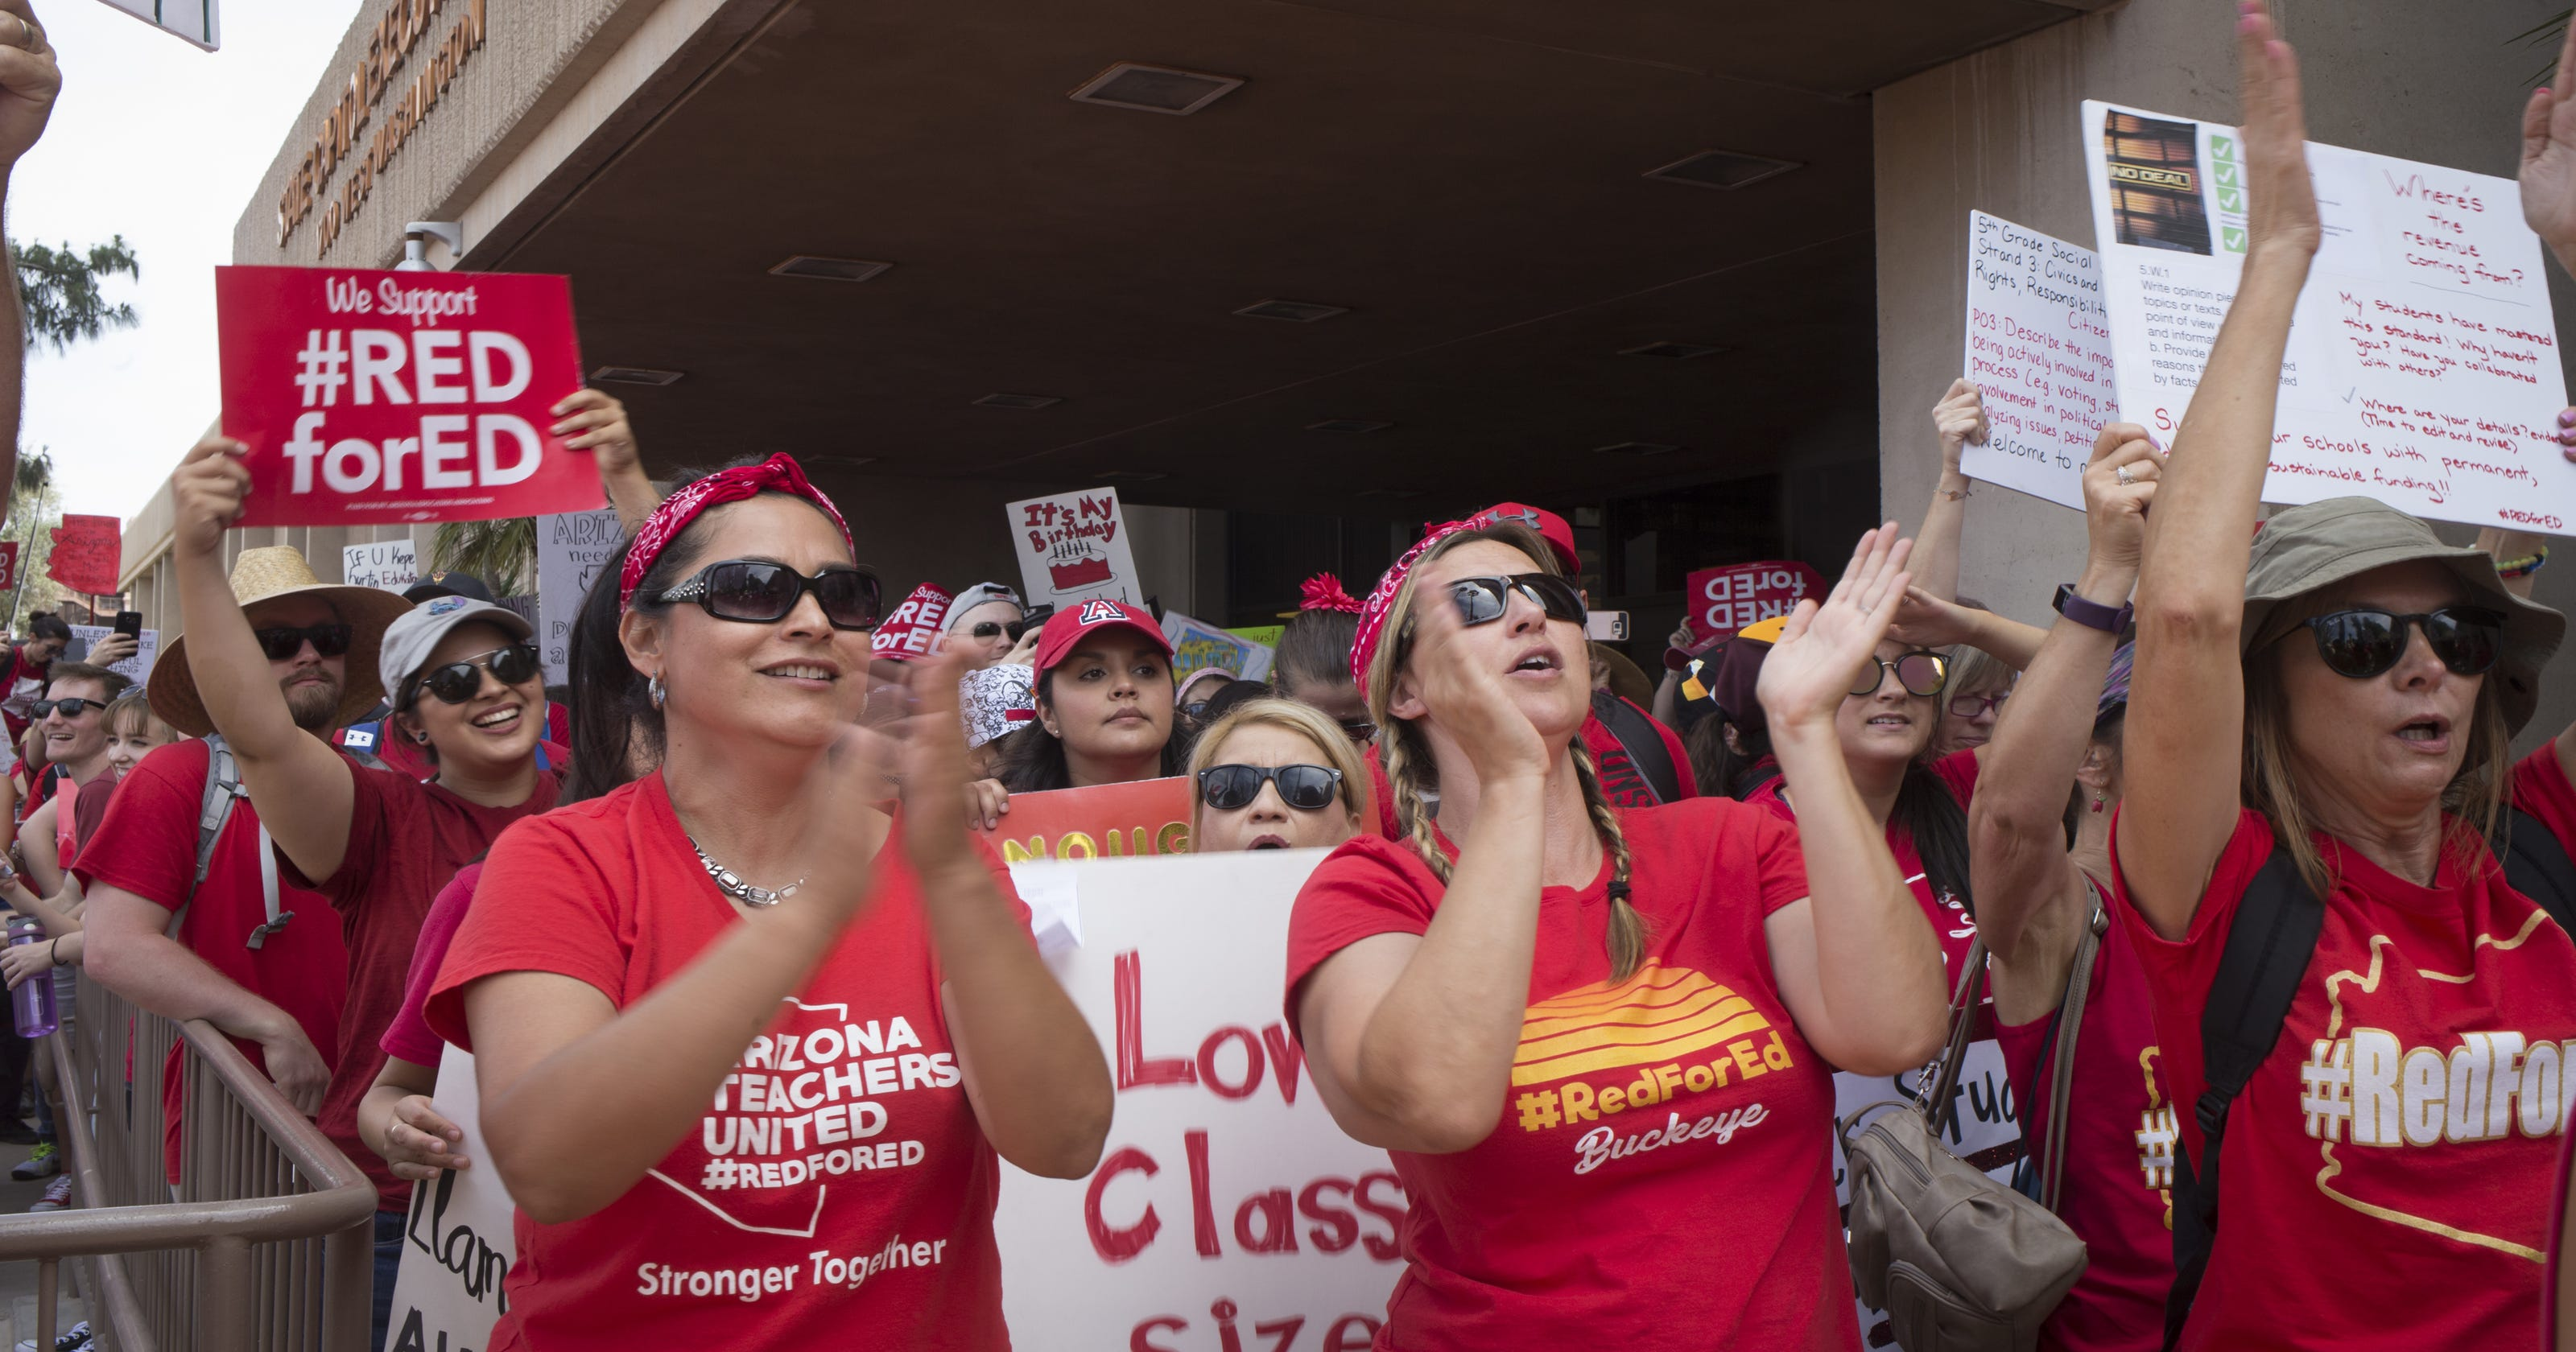 Redfored Could Turn Parents Against Teachers I Fear That The Most